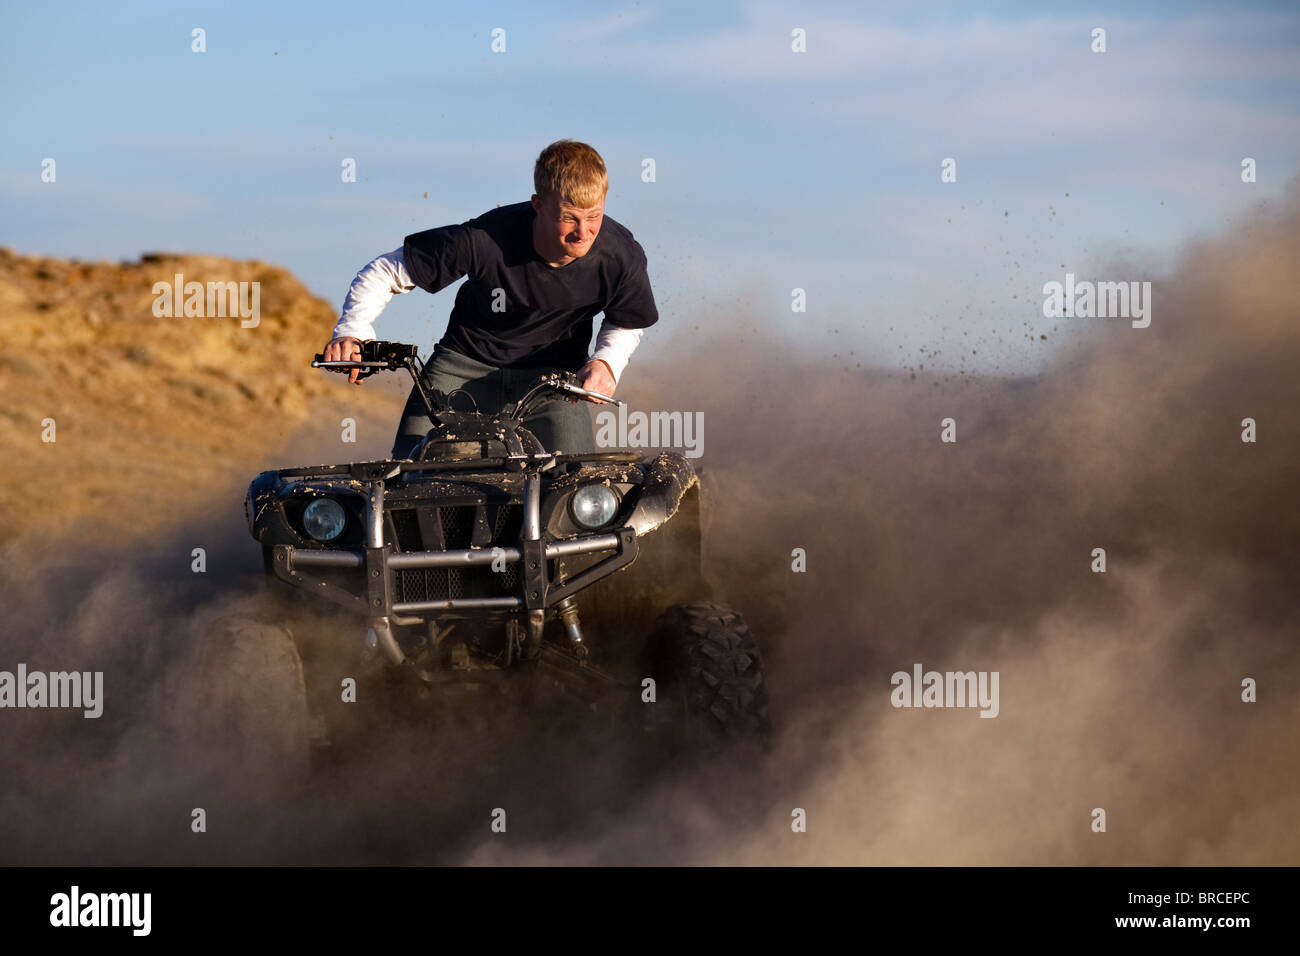 teen with funny expression on quad / ATV - four wheeler kicking up dust - Stock Image